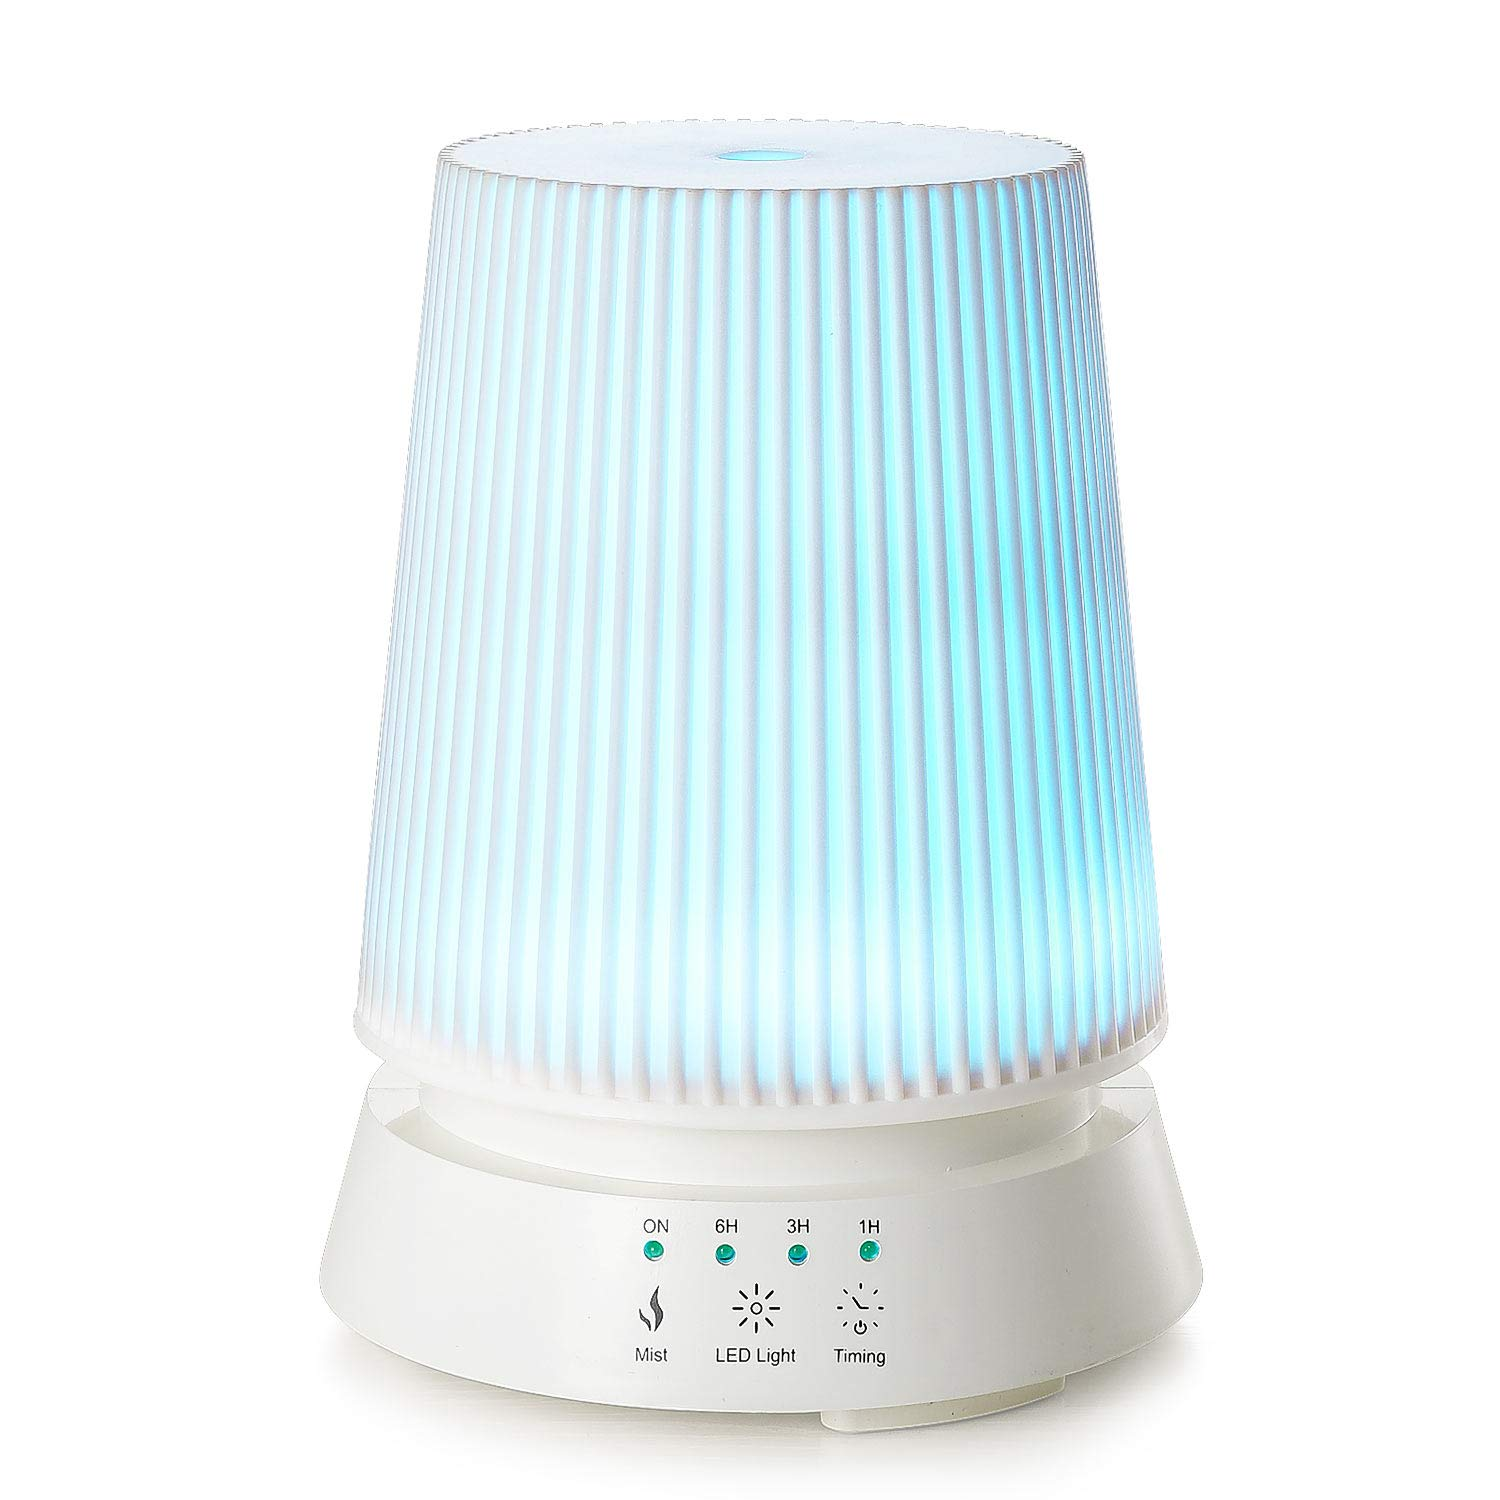 Linkind 350ml Essential Oil Diffuser Nightlight Ultrasonic Cool Mist Humidifier with Waterless Auto-off, 4 Timer Settings, 7 Colors Changing LED lights, Adjustable Mist Mode for Home, Office